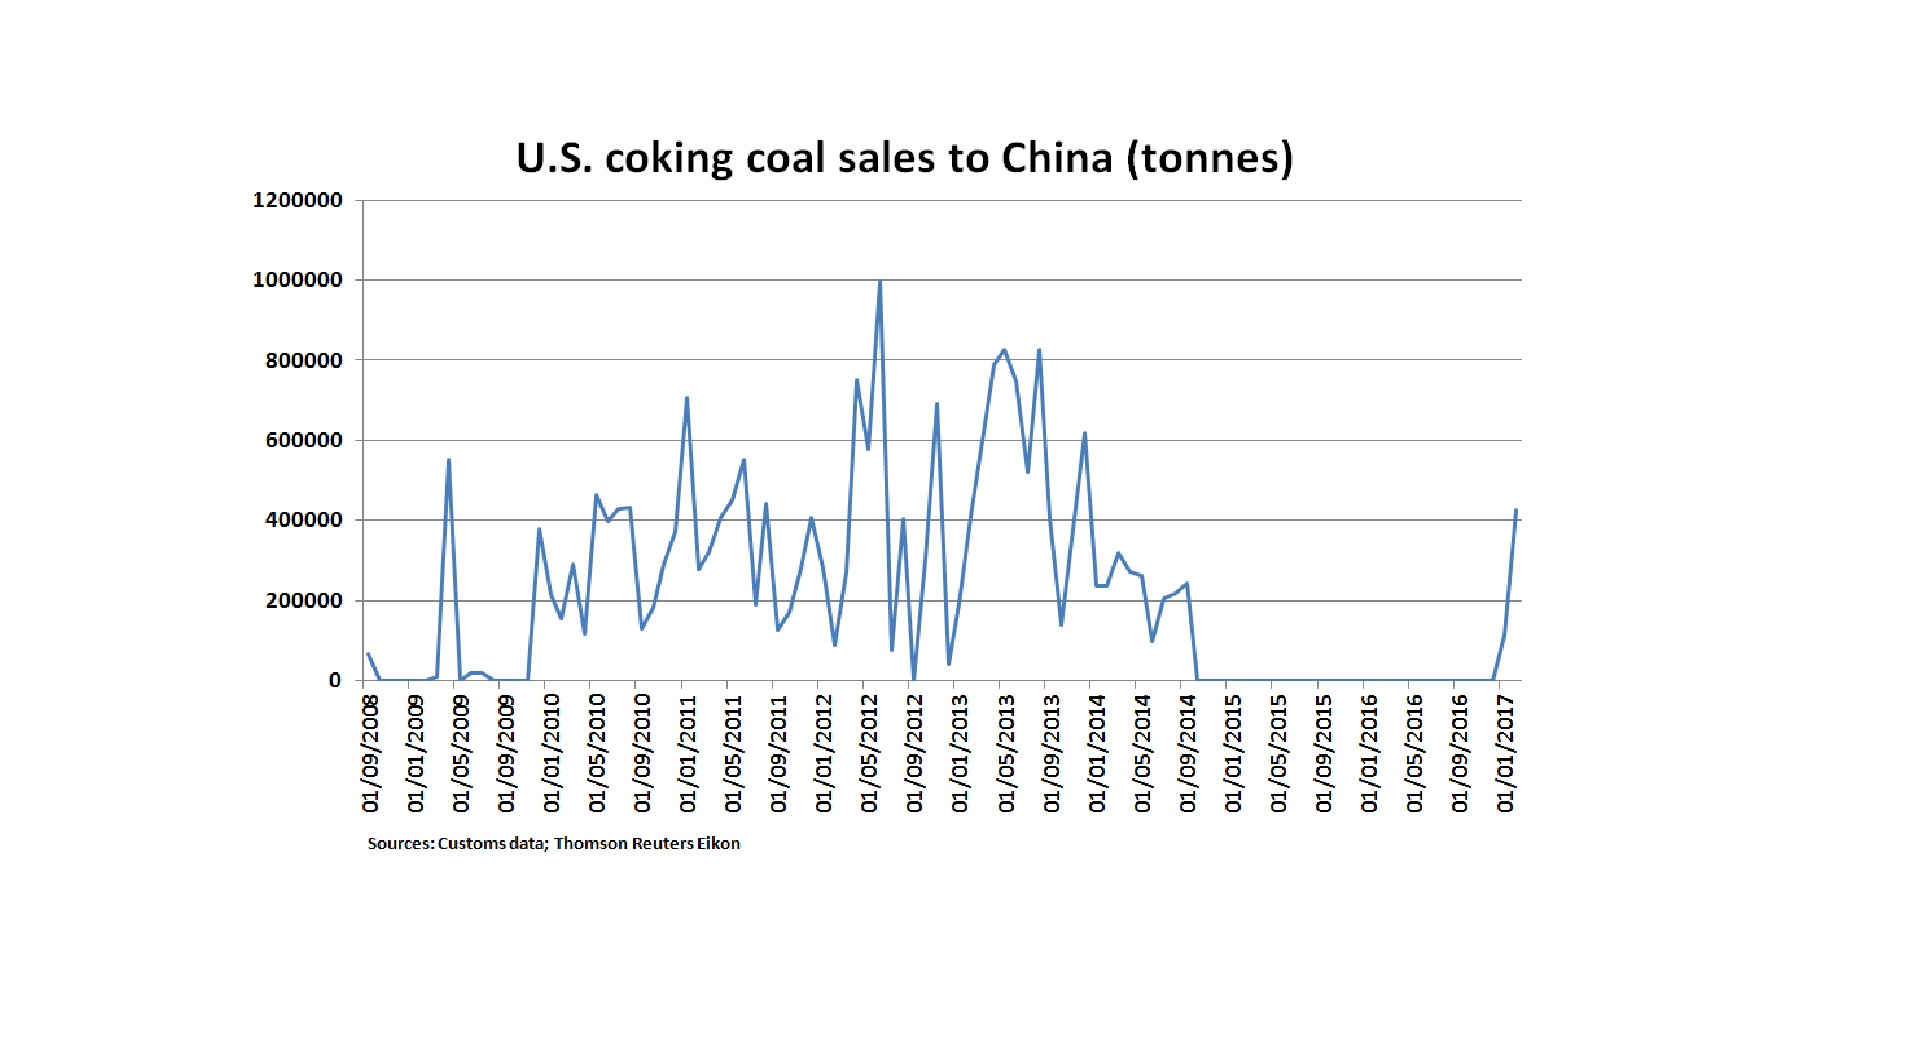 U.S. coking coal exports to China